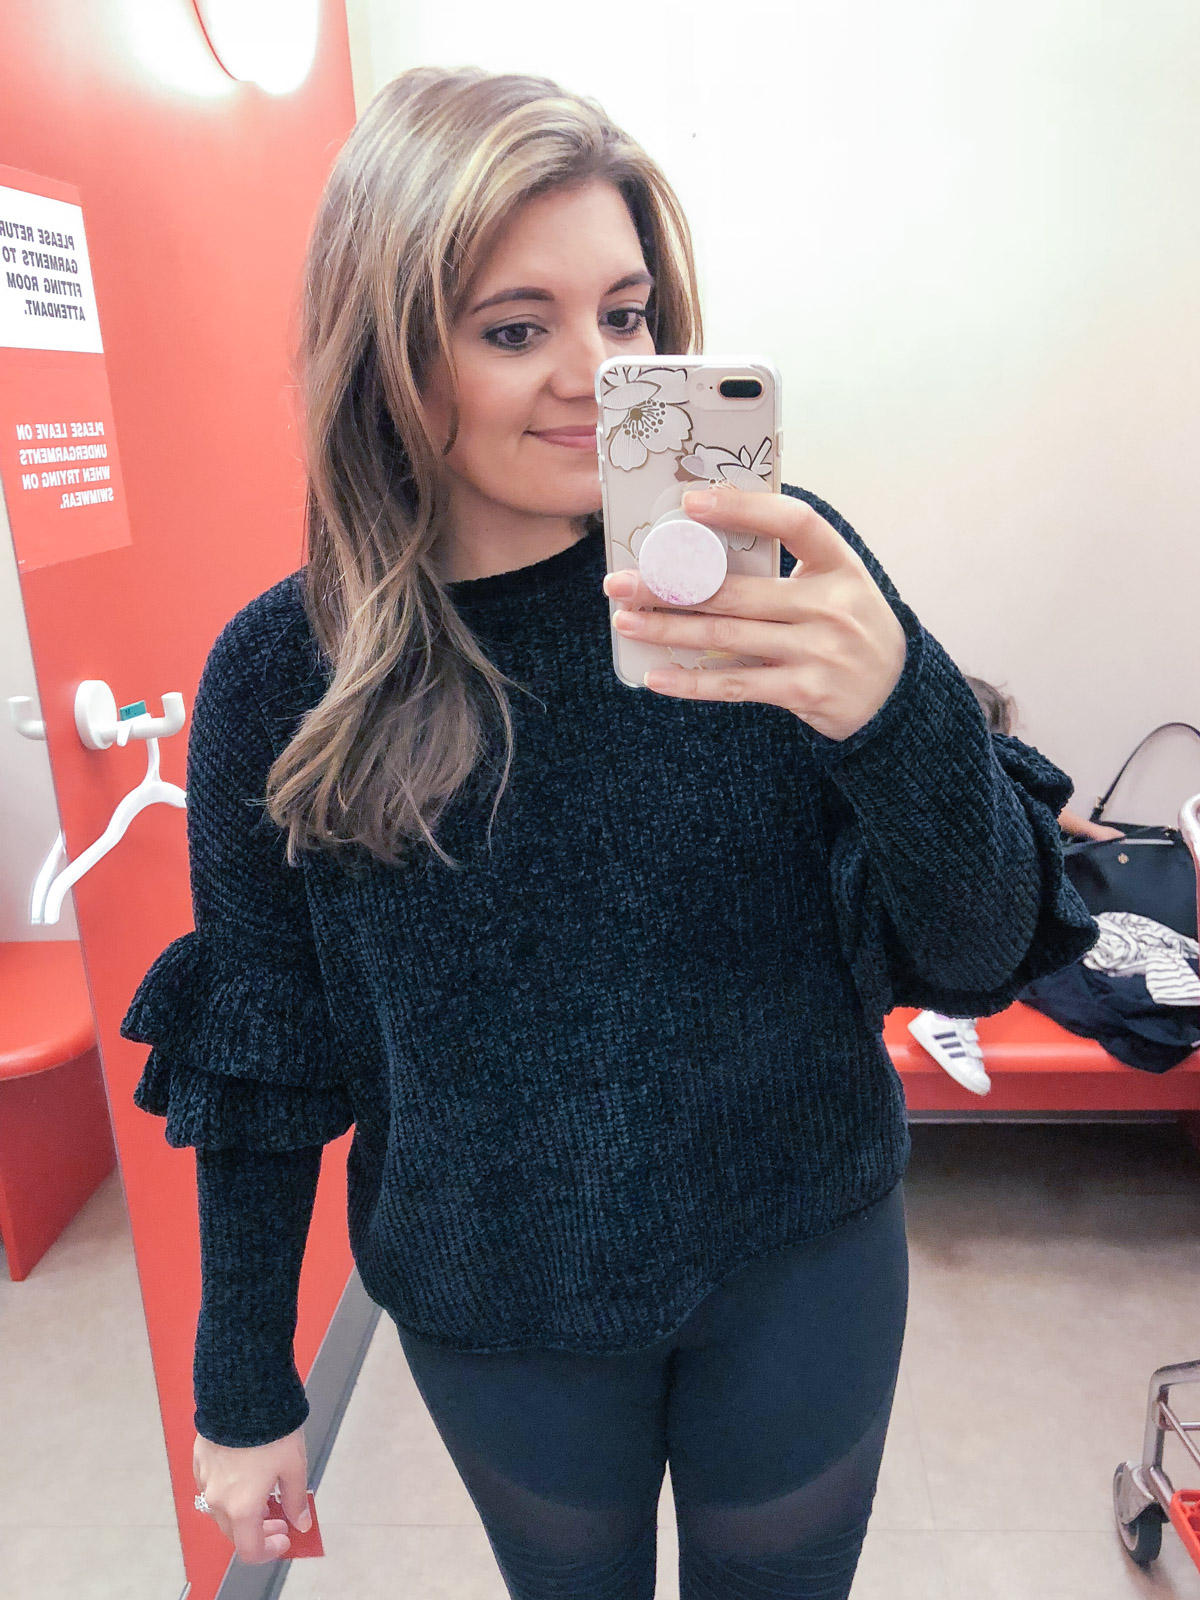 target a new day line - target try-on session | For more dressing room reviews, check out bylaurenm.com!